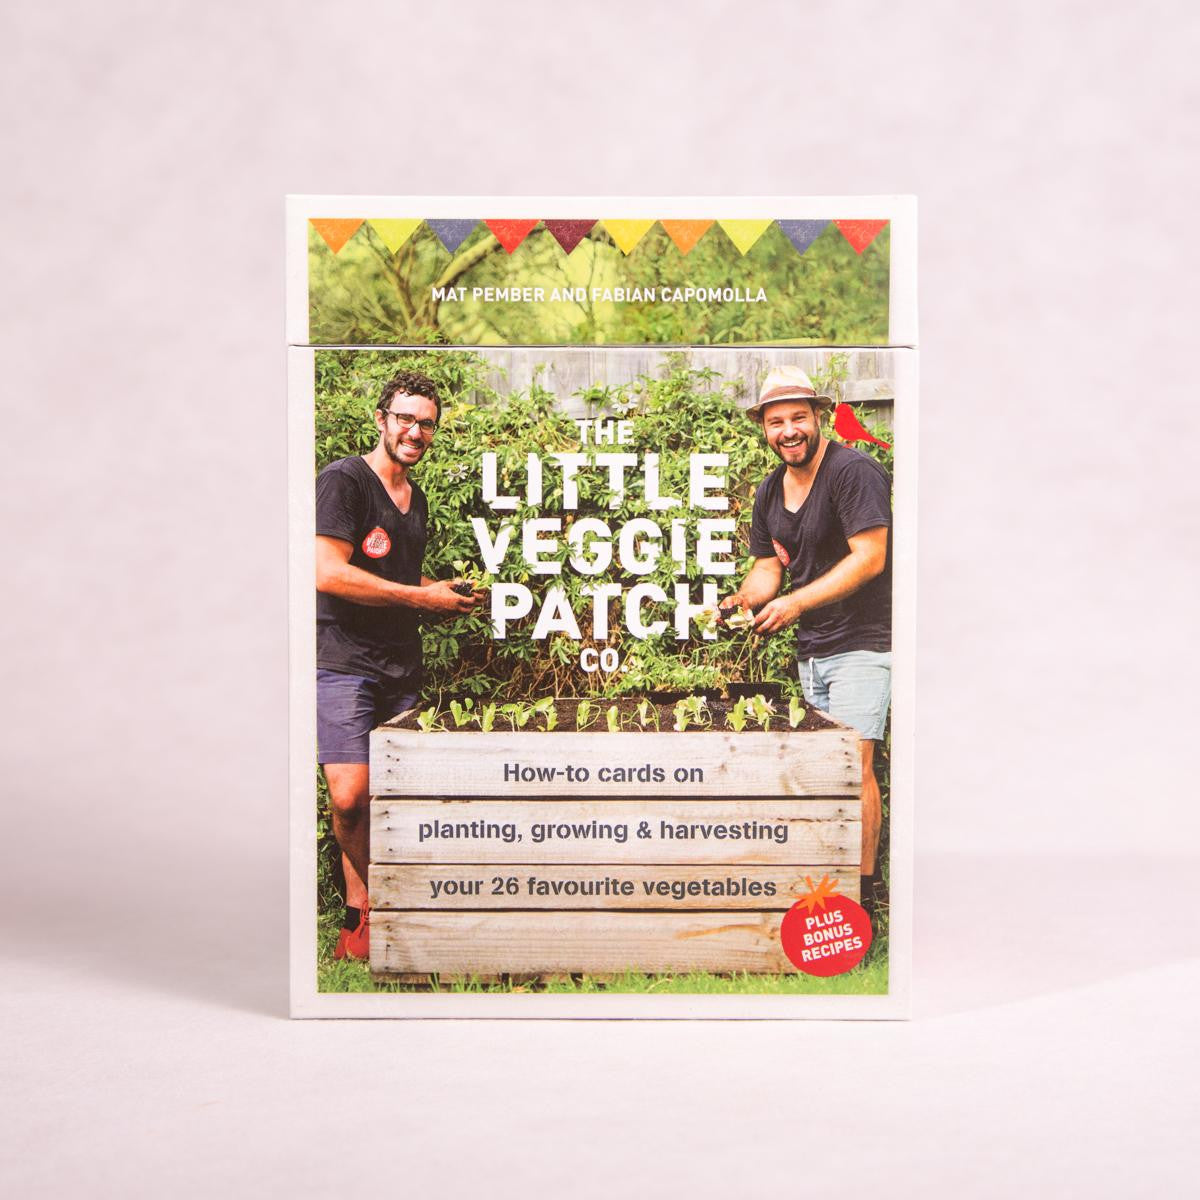 How to Cards: Planting, Growing & Harvesting | by the Little Veggie Patch Co - How-to Cards - Throw Some Seeds - Australian gardening gifts and eco products online!